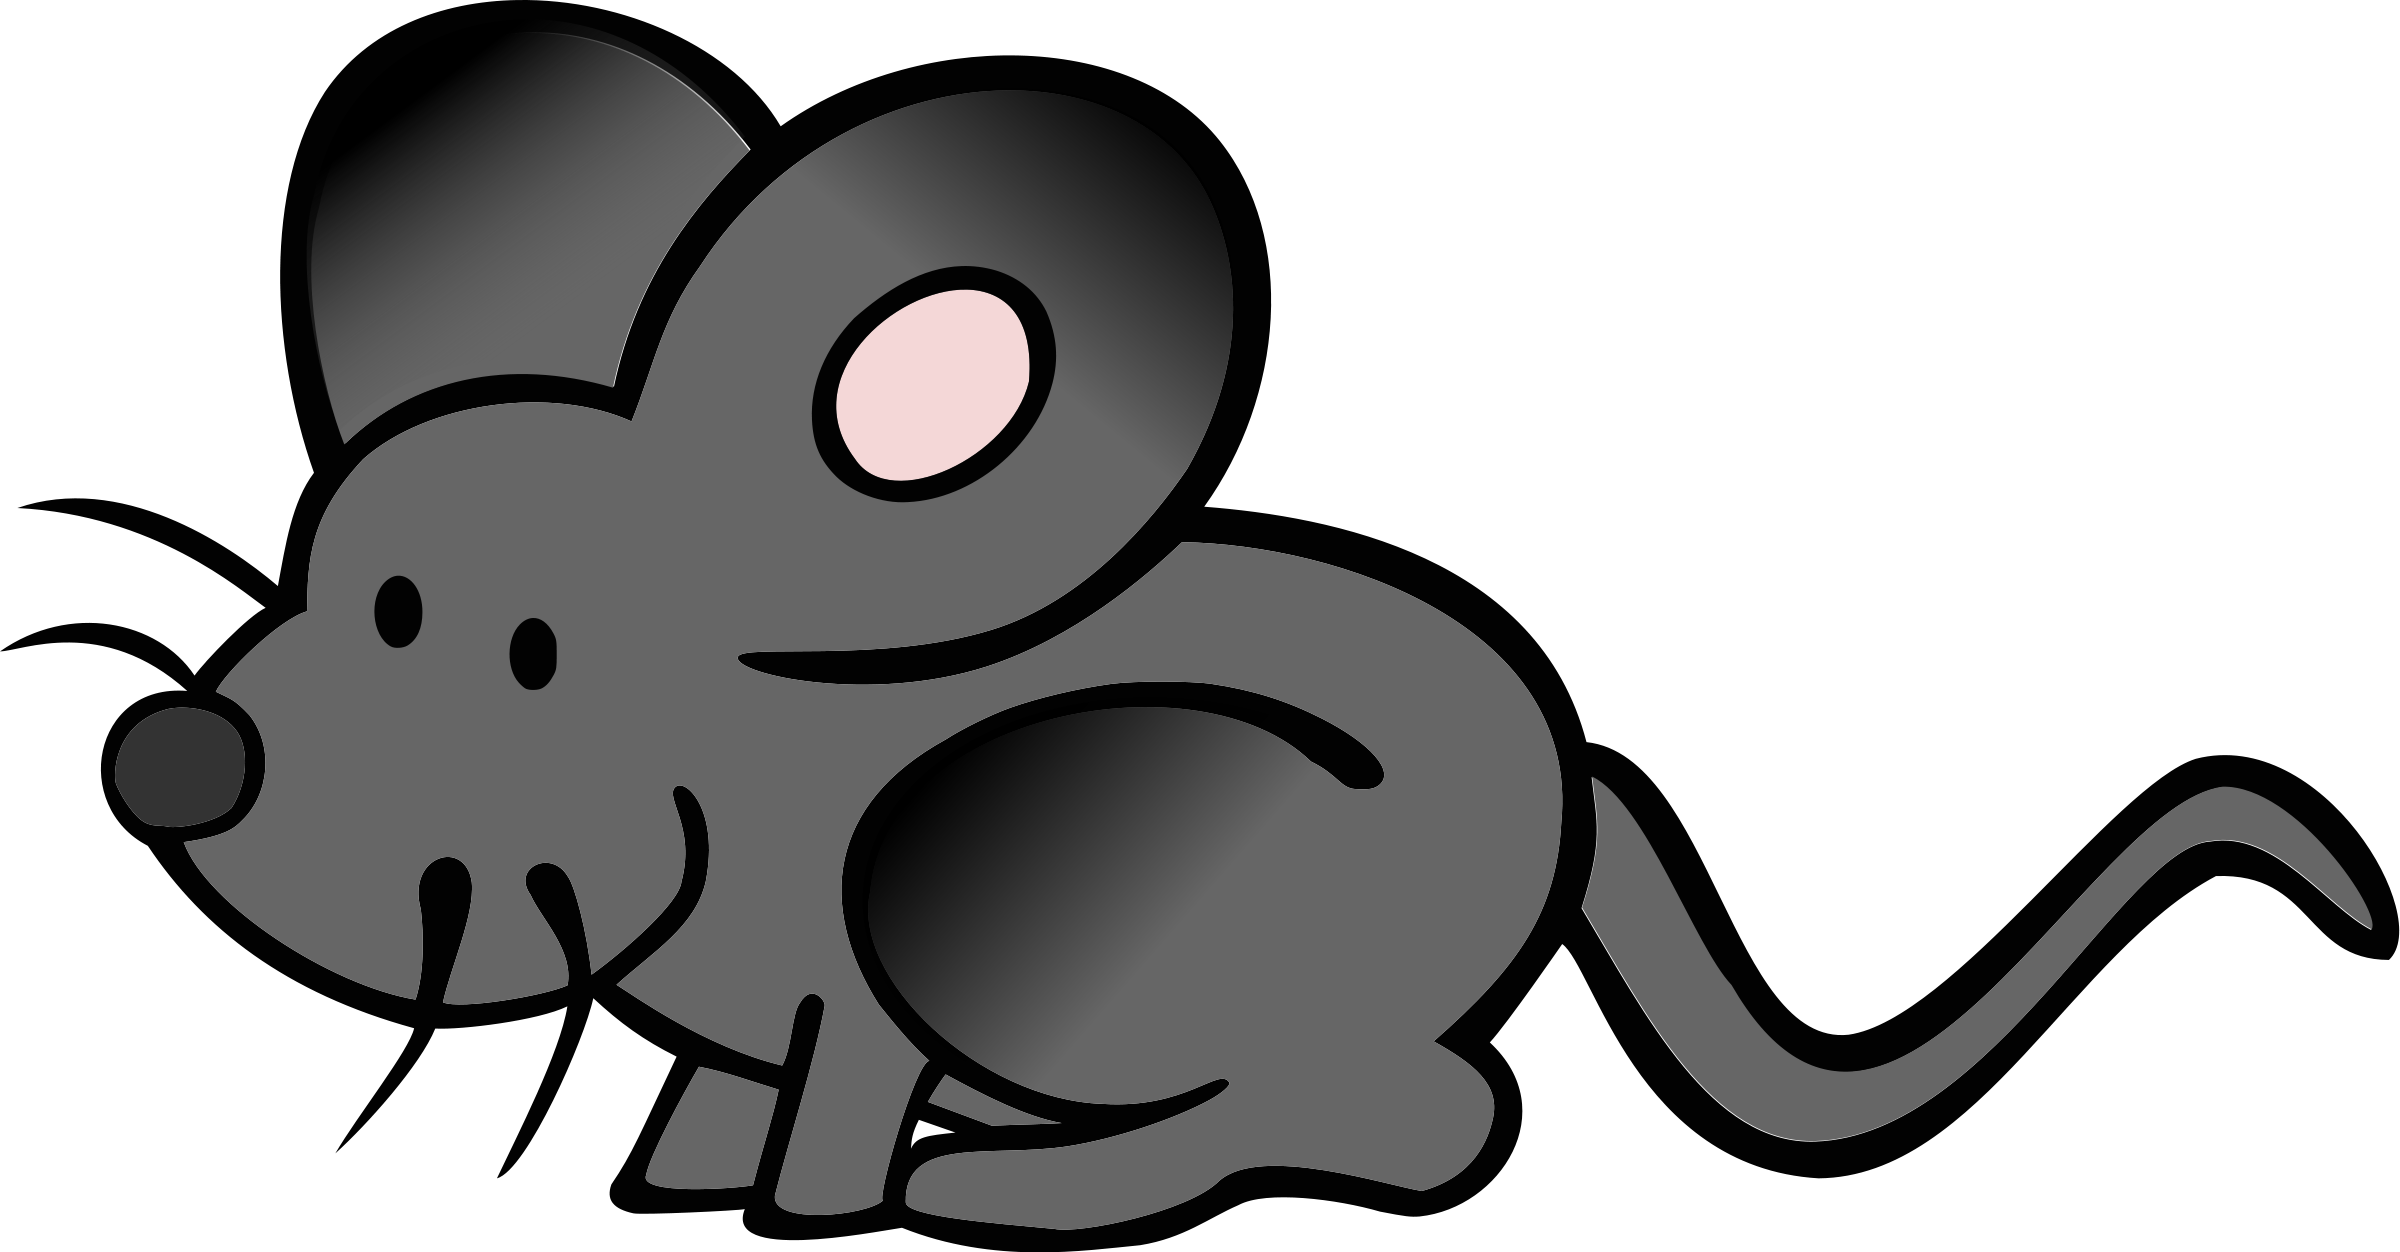 Mouse Cartoon Clipart Panda Free Clipart Images